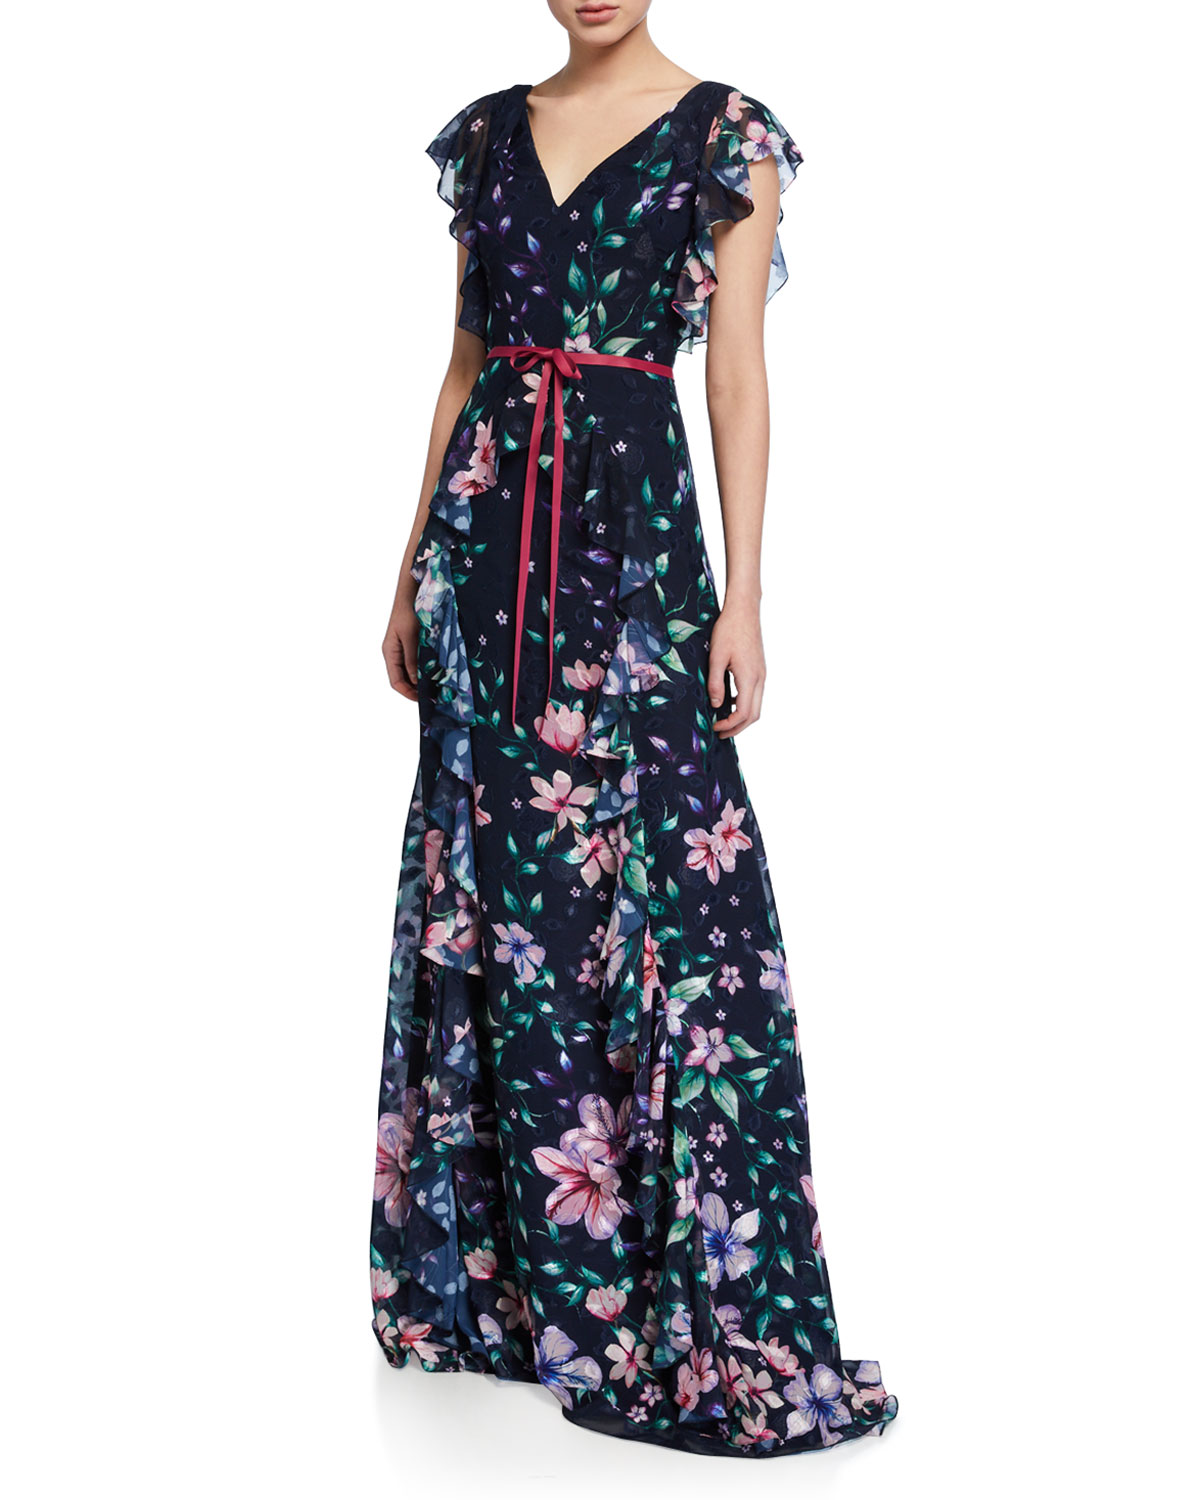 Marchesa Notte Tops FLORAL BURNOUT CHIFFON V-NECK CAP-SLEEVE GOWN W/ RUFFLE DETAILING